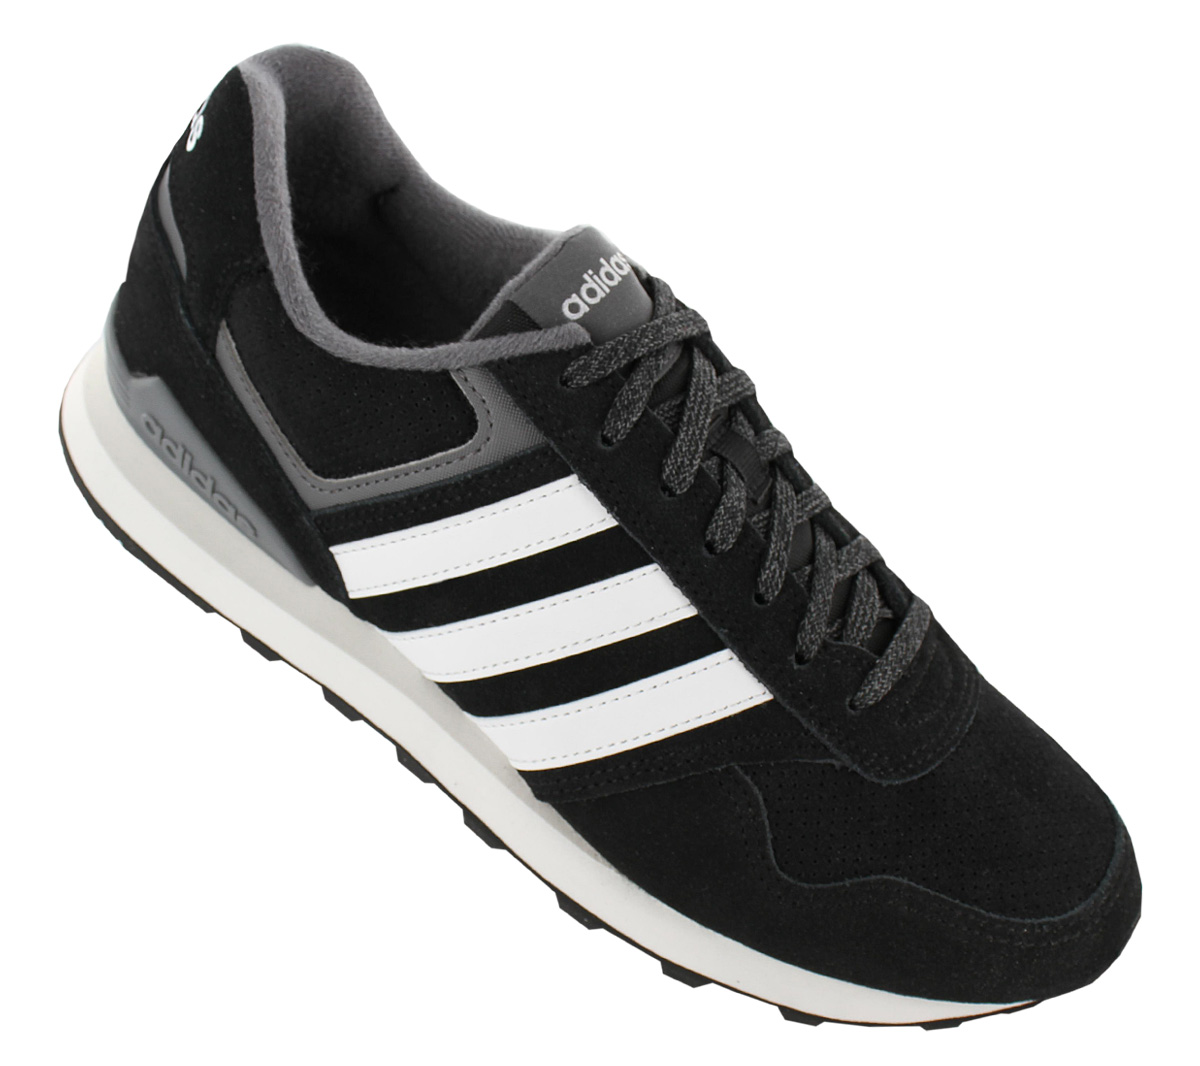 Adidas 10K Men s Sneakers Shoes Leather Black Trainers Zx BB9787 700 ... b30c91af5